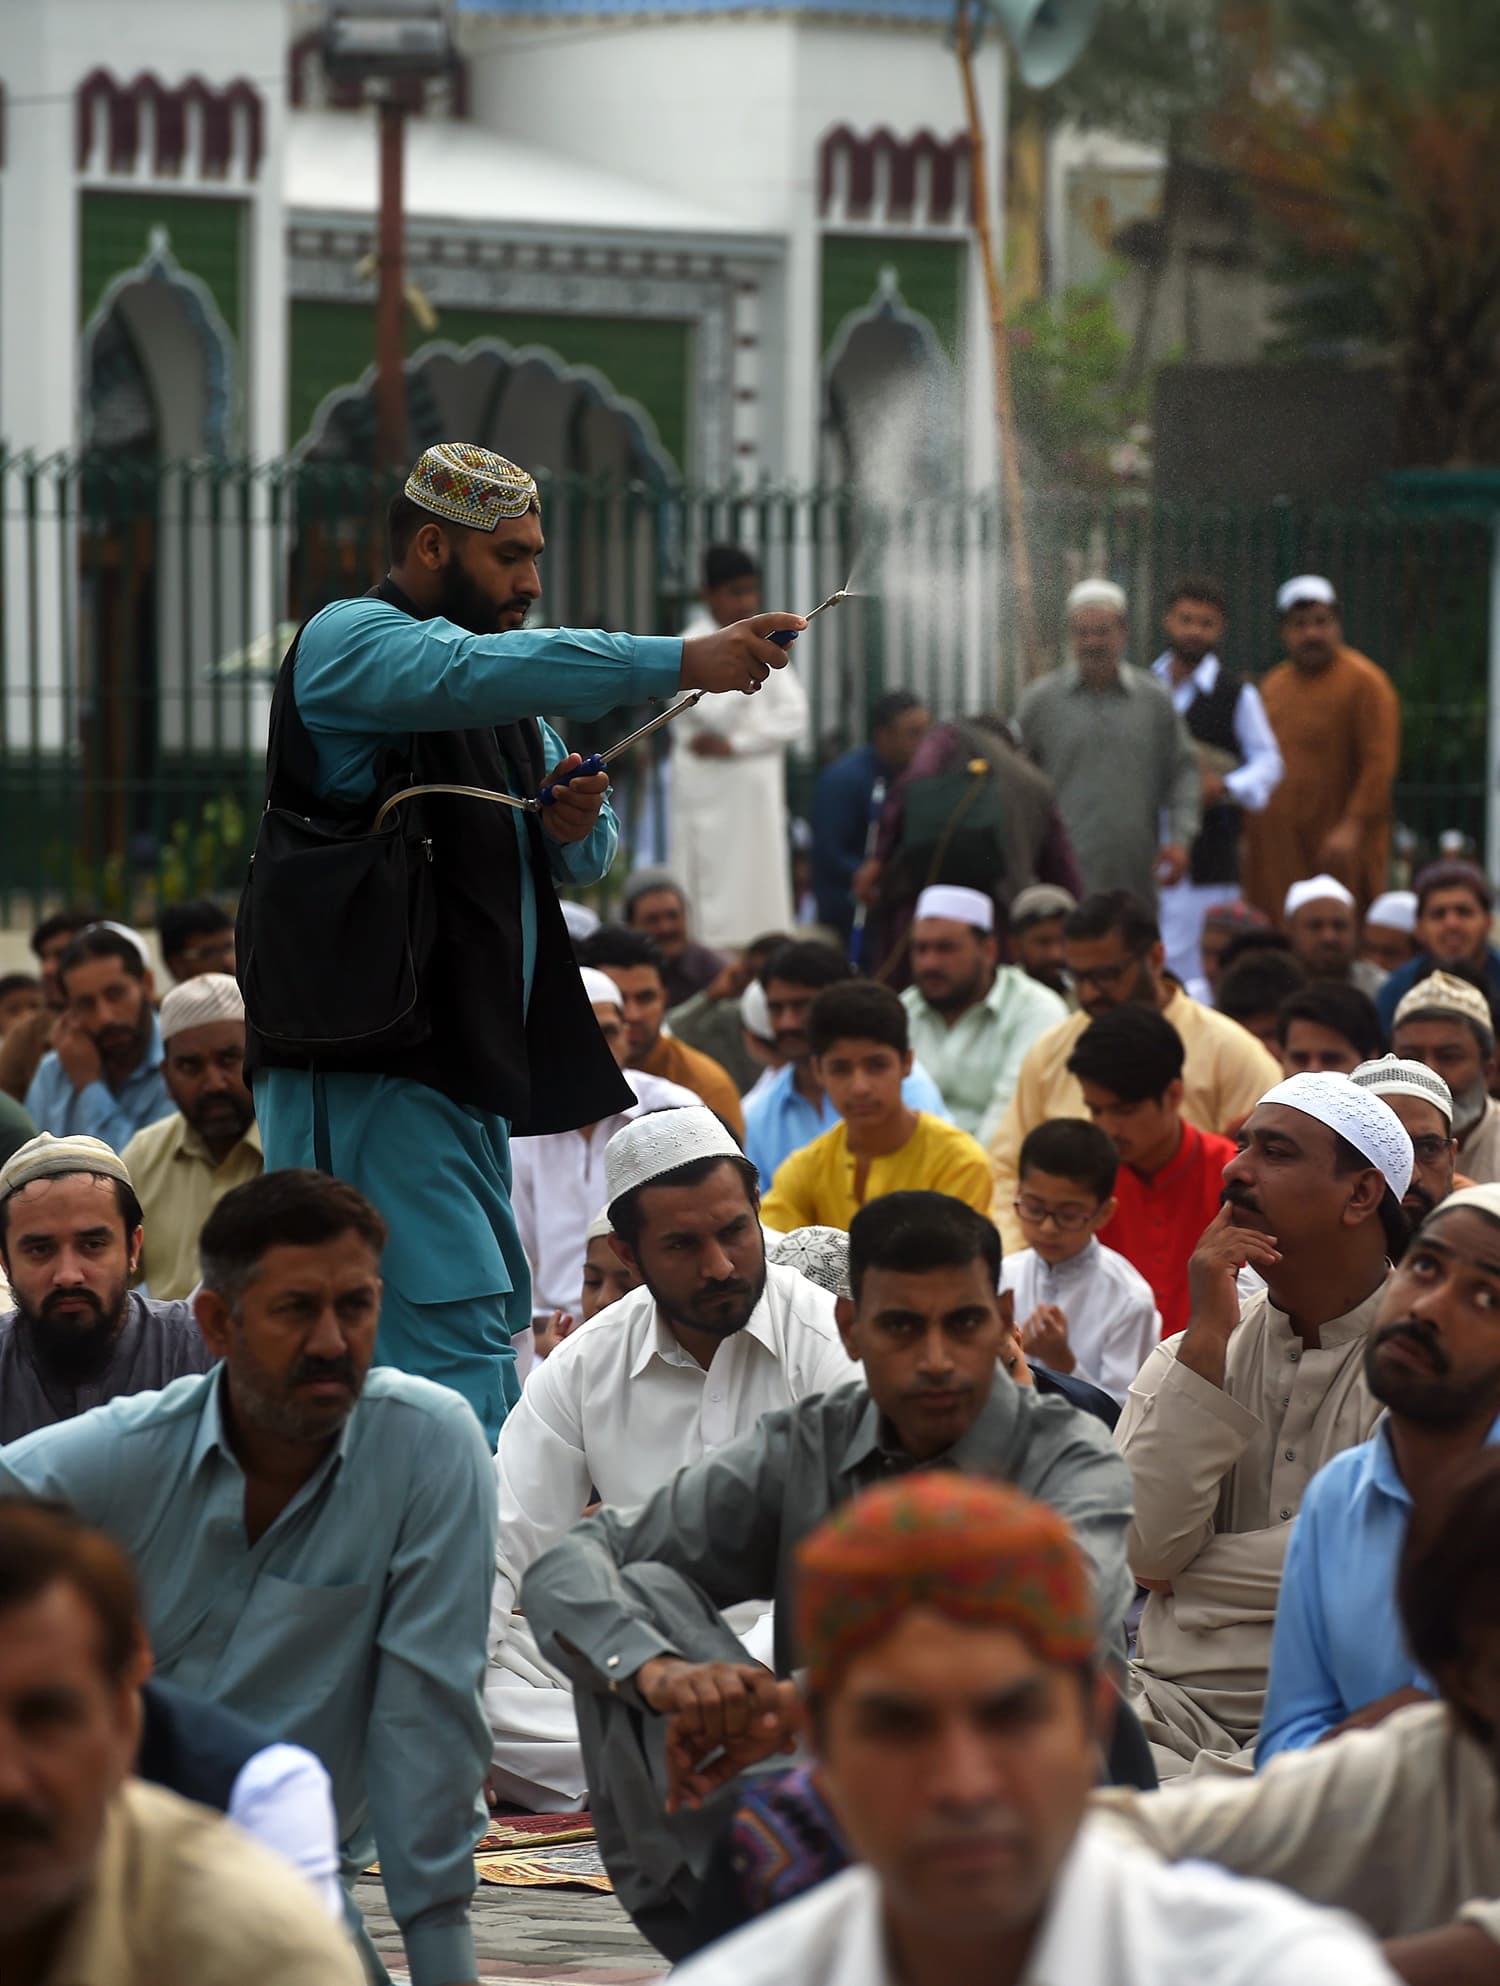 A man sprays perfume during Eid prayers outside a mosque in Rawalpindi. — AFP